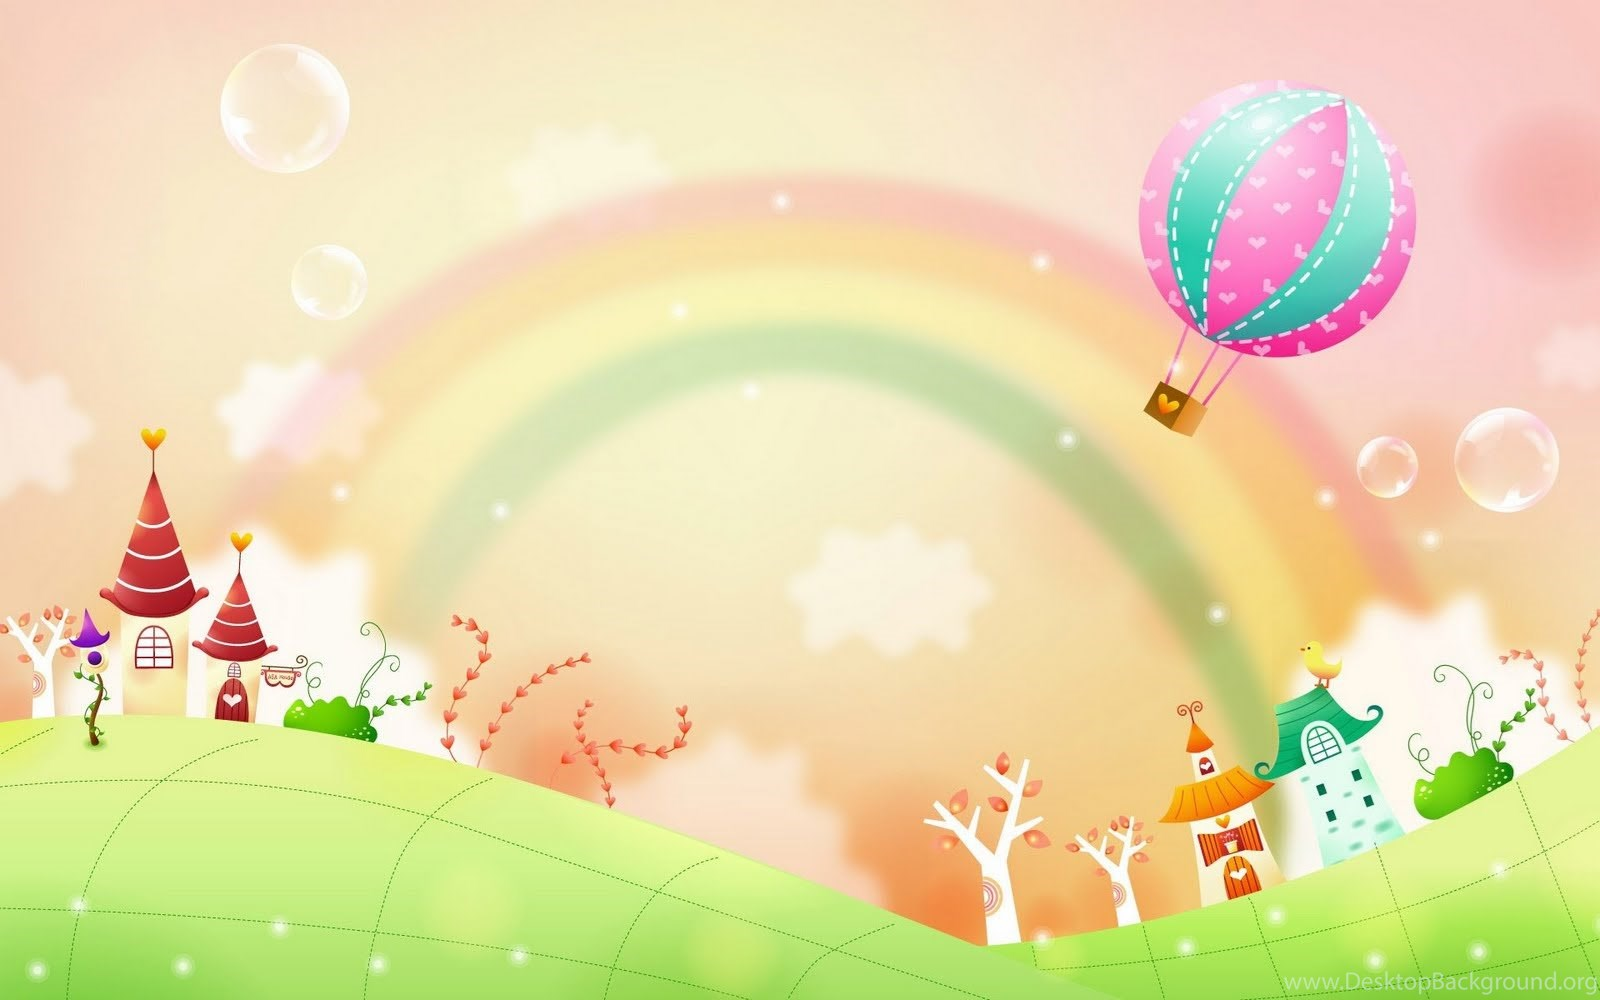 Gambar Dunia Kartun Fantasi Yang Cantik Cantik Hd Wallpapers Android Desktop Background